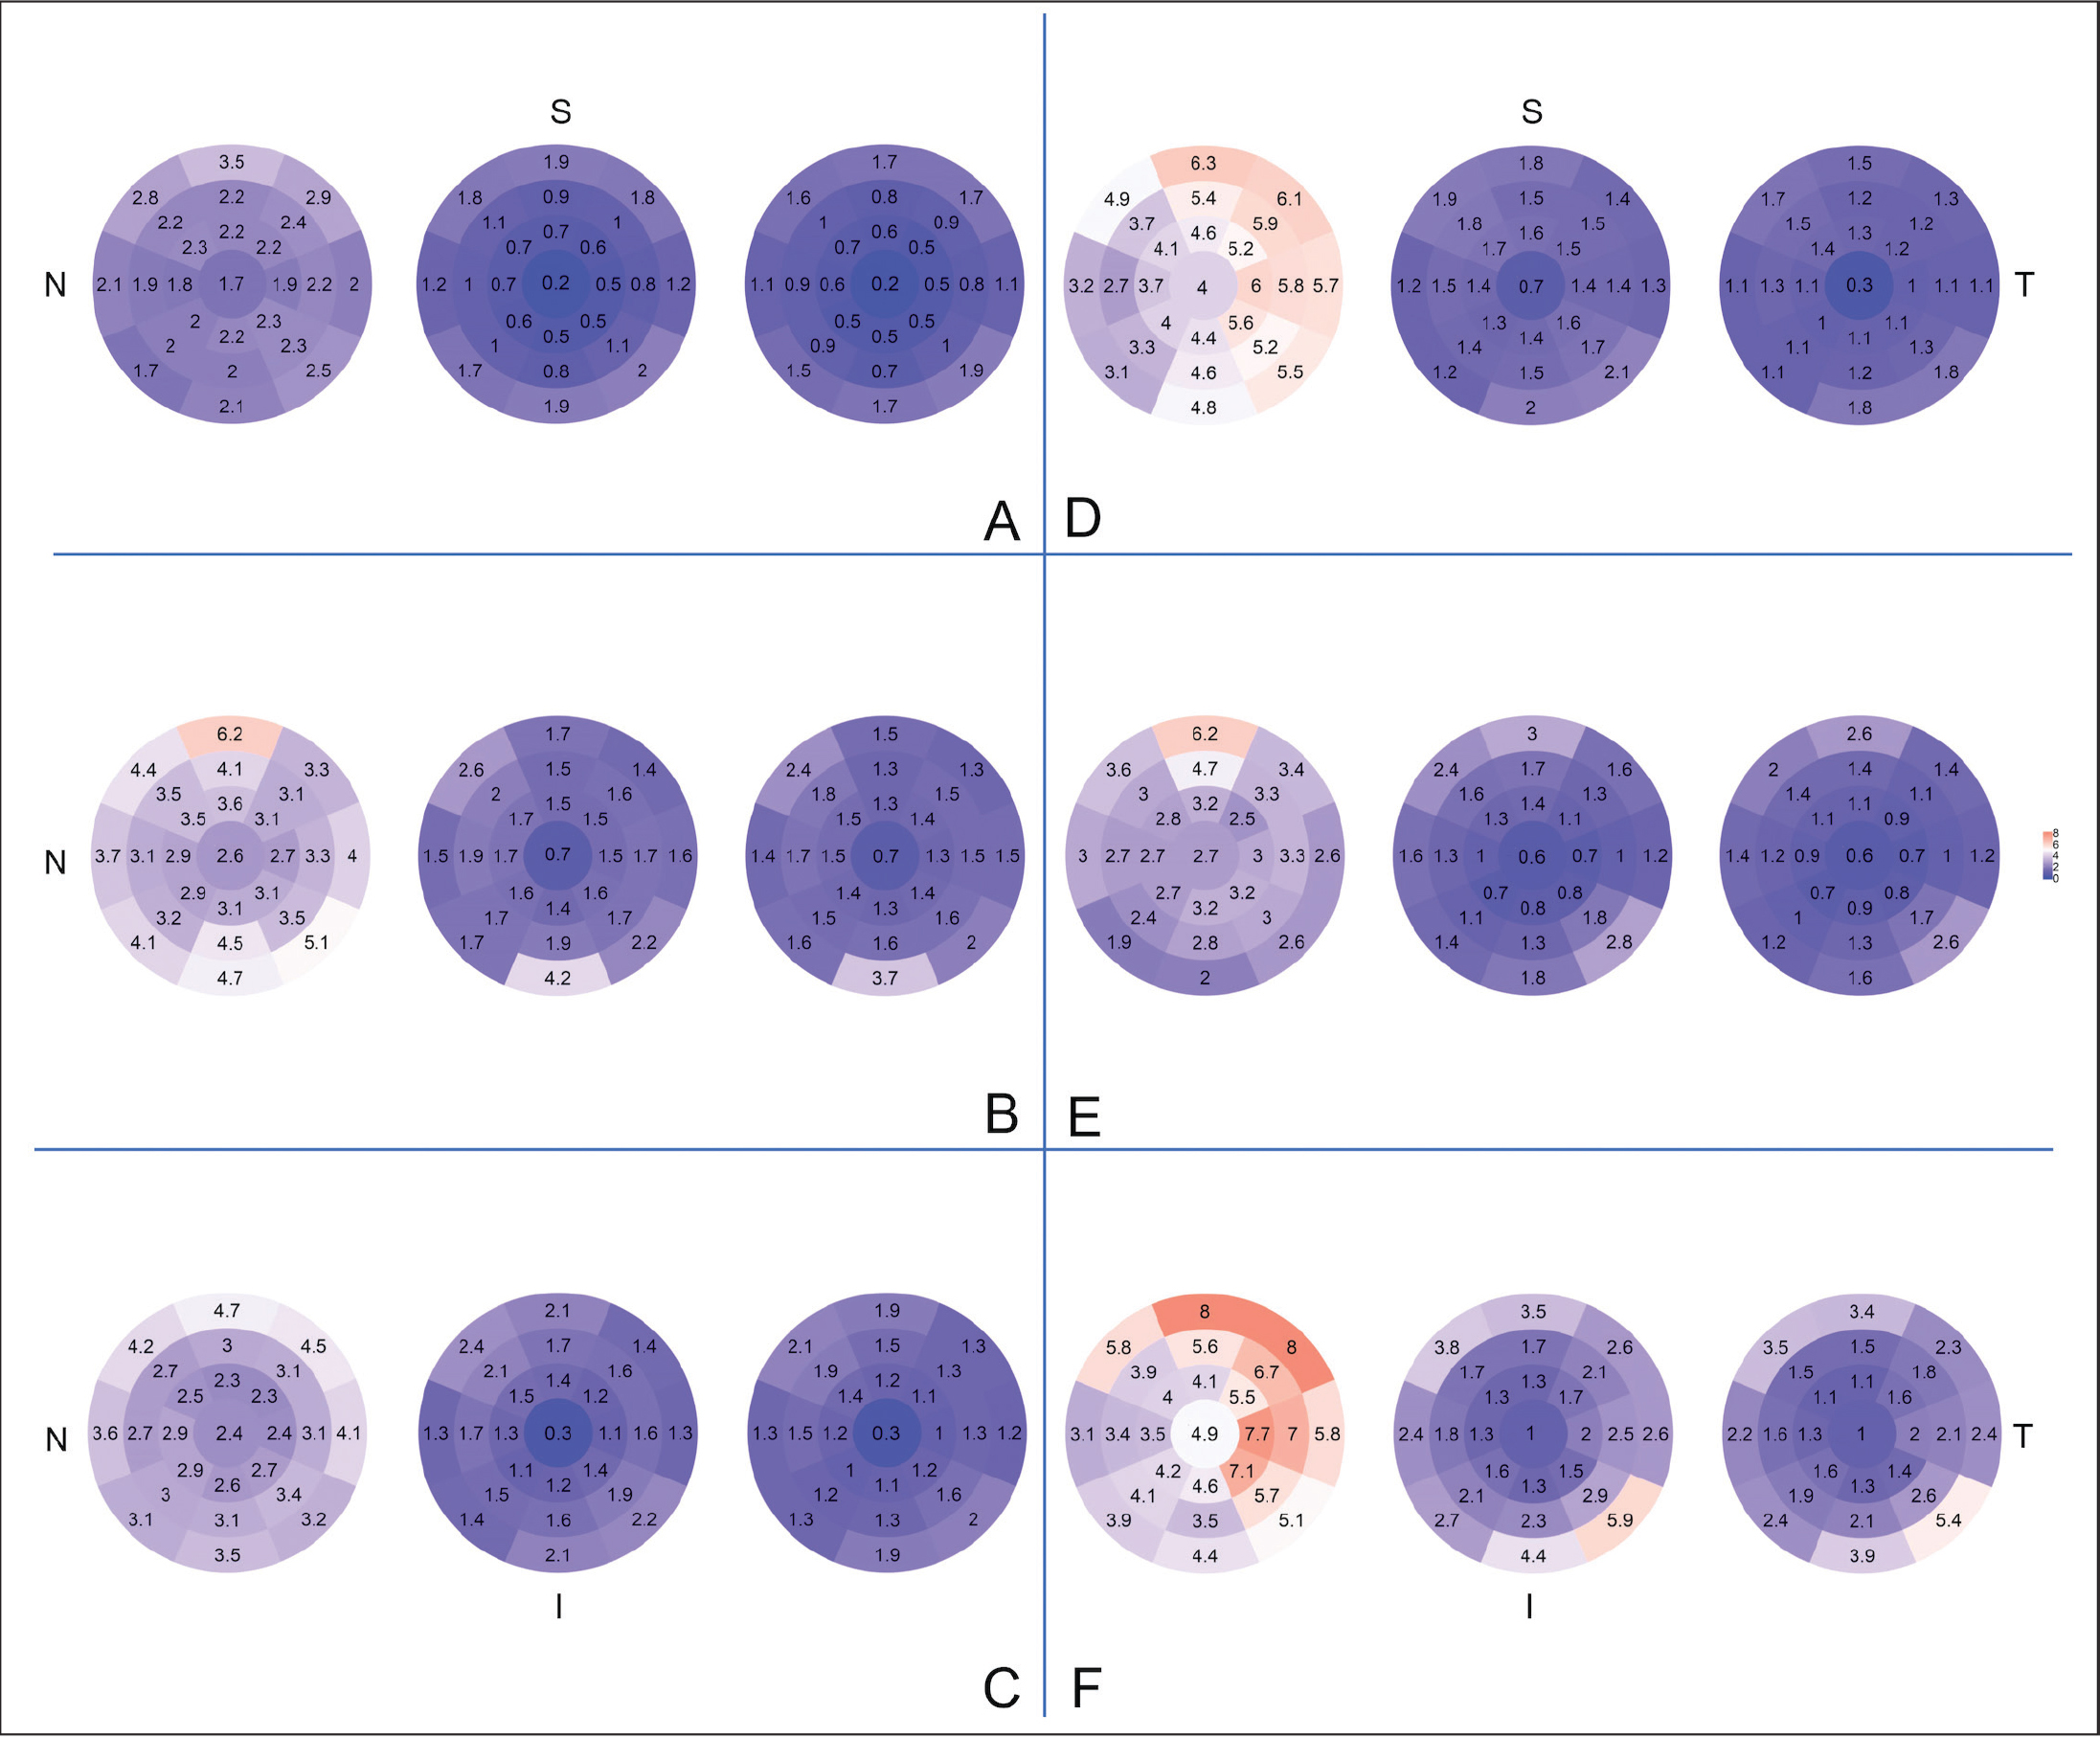 Coefficient of variation for repeatability of epithelial thickness (left), stromal thickness (middle). and total corneal thickness (right) measurement in (A) myopic eyes, (B) corneas after transepithelial photorefractive keratectomy, (C) corneas after small incision lenticule extraction, (D) corneas after femtosecond laser–assisted in situ keratomileusis, (E) eyes with mild keratoconus, and (F) eyes with advanced keratoconus. Temporal, superior, nasal, and inferior locations are marked as 'T', 'S', 'N', and 'I', respectively.